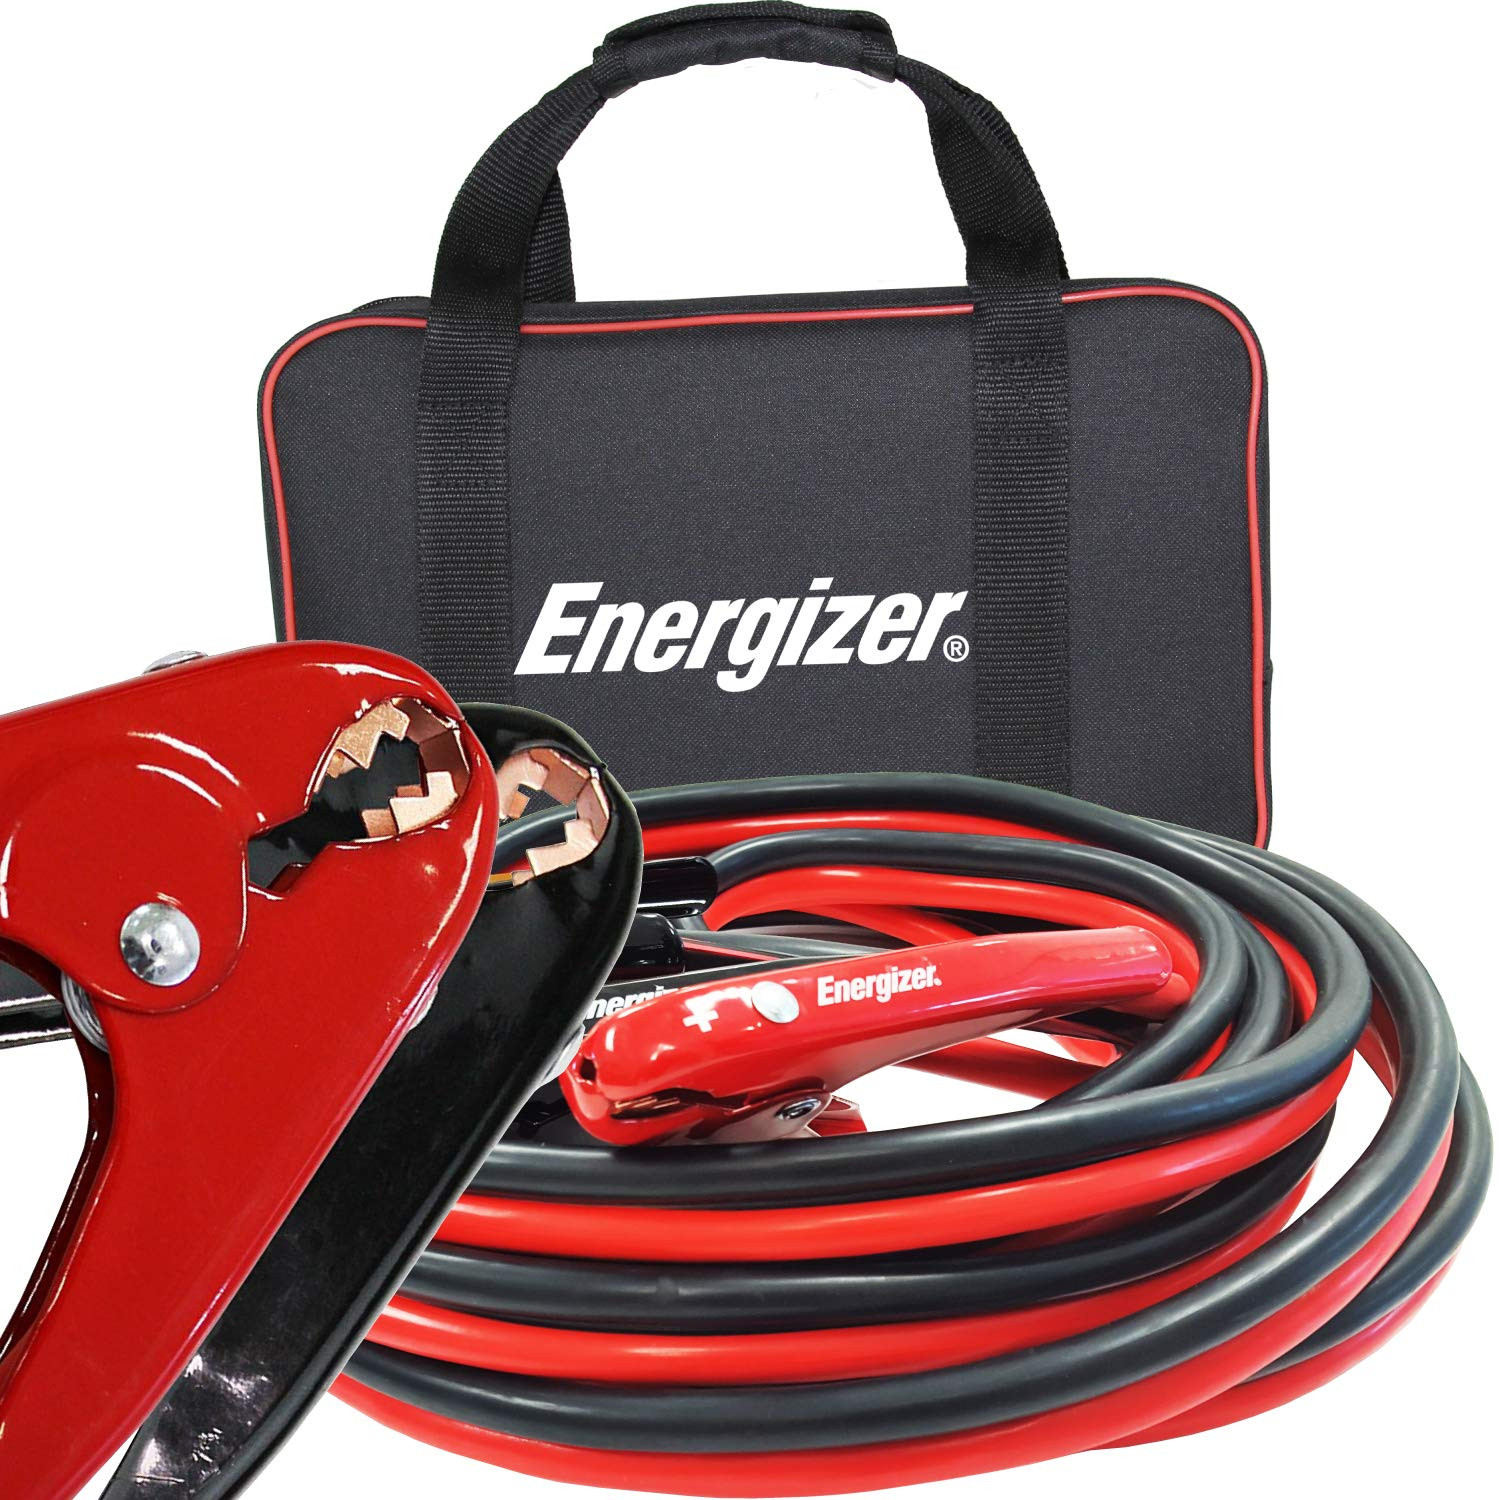 Energizer 1-Gauge 800A Permanent Installation kit Jumper Battery Cables with Quick Connect Plug 30 Ft Booster Jump Start ENB-130-30 Allows You to Boost a Battery from Behind a Vehicle!